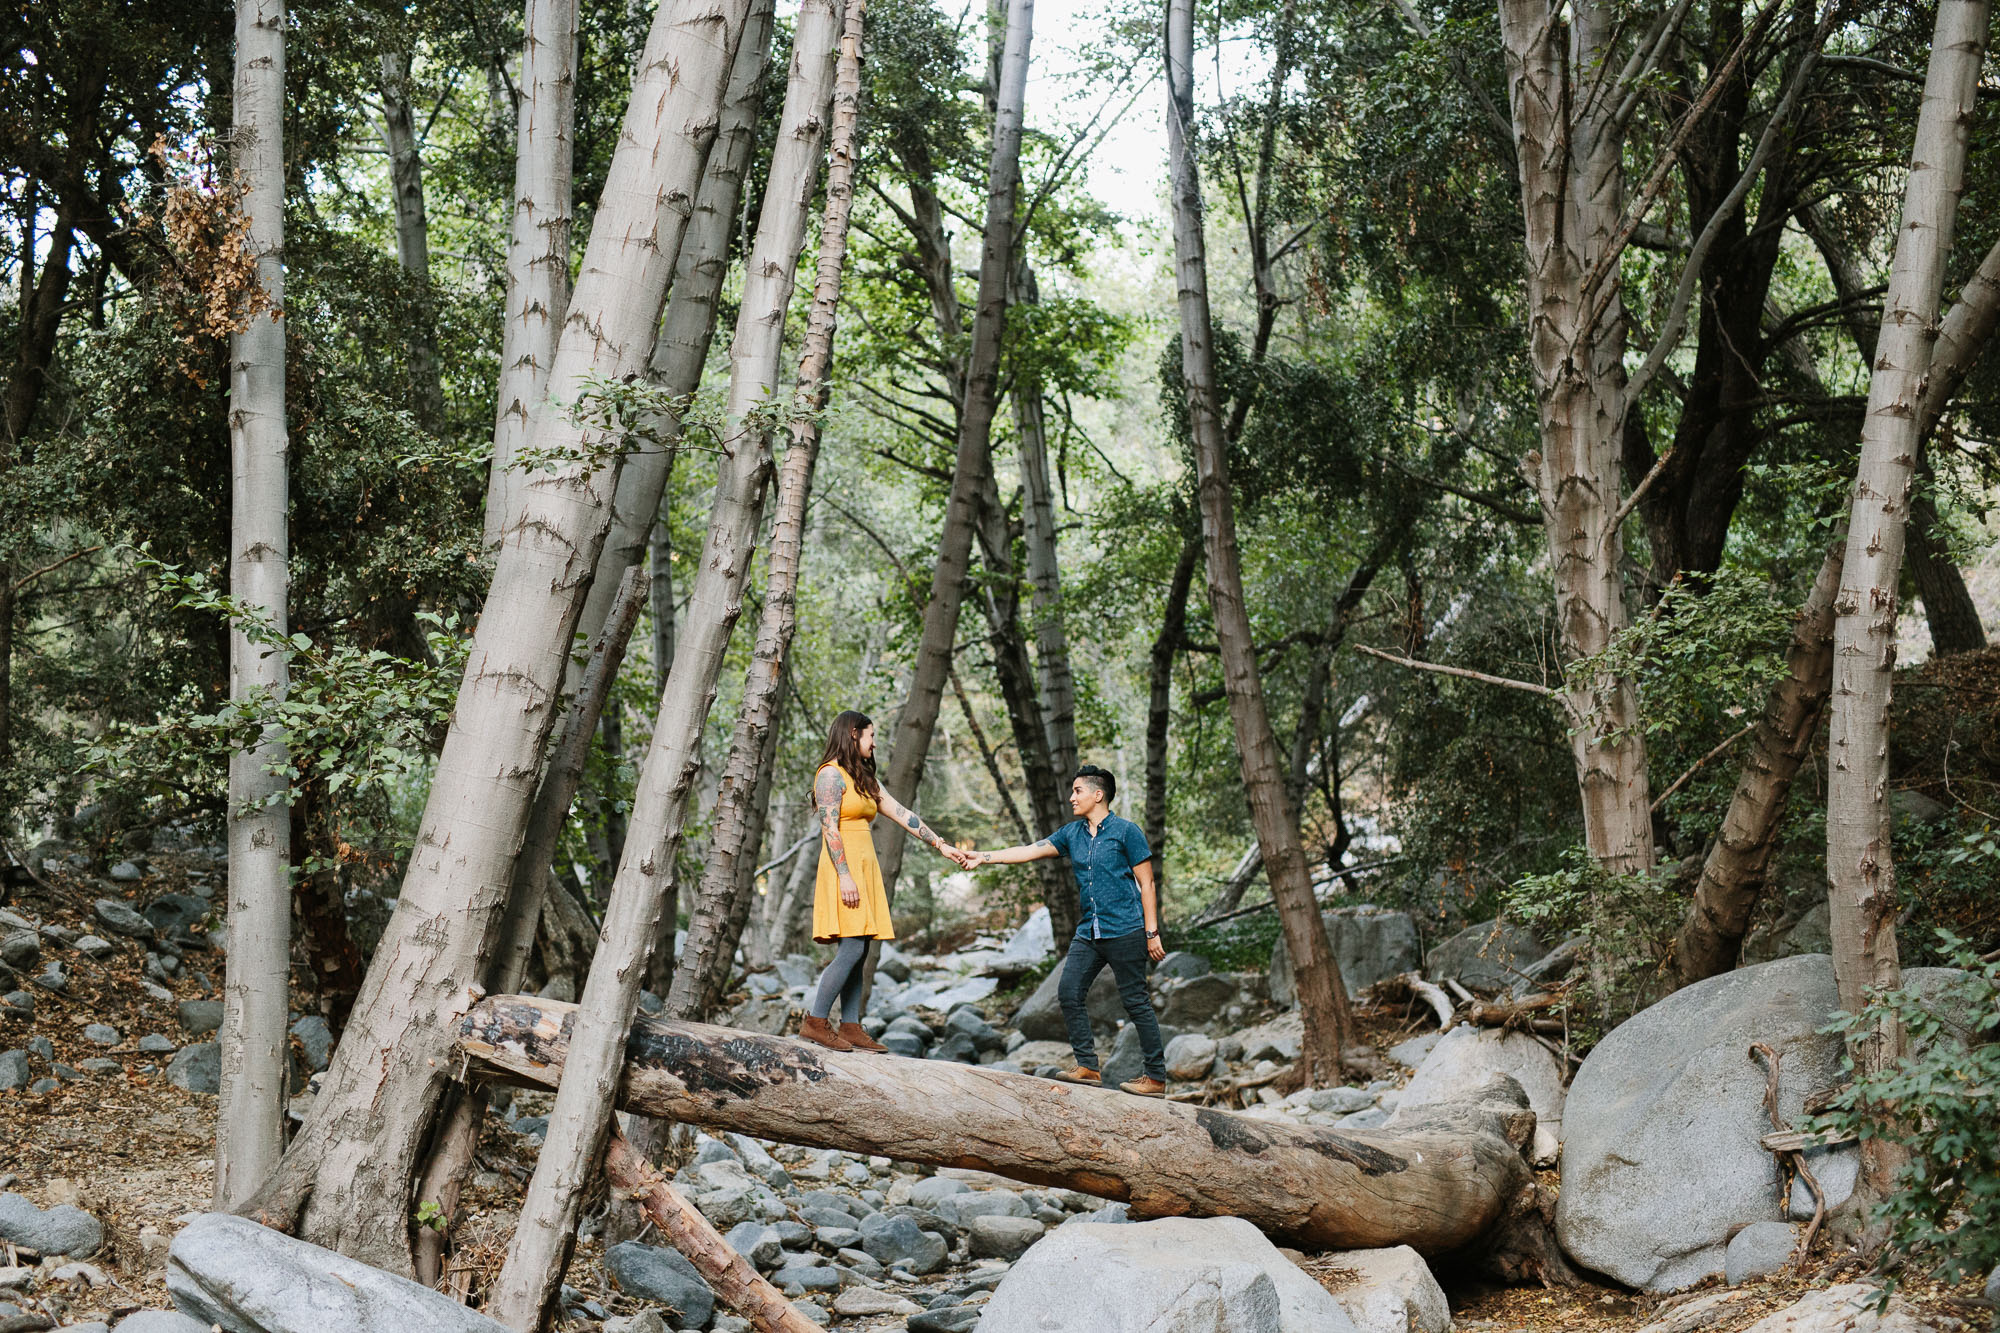 www-marycostaphotography-com-angeles-national-forest-engagement-0003